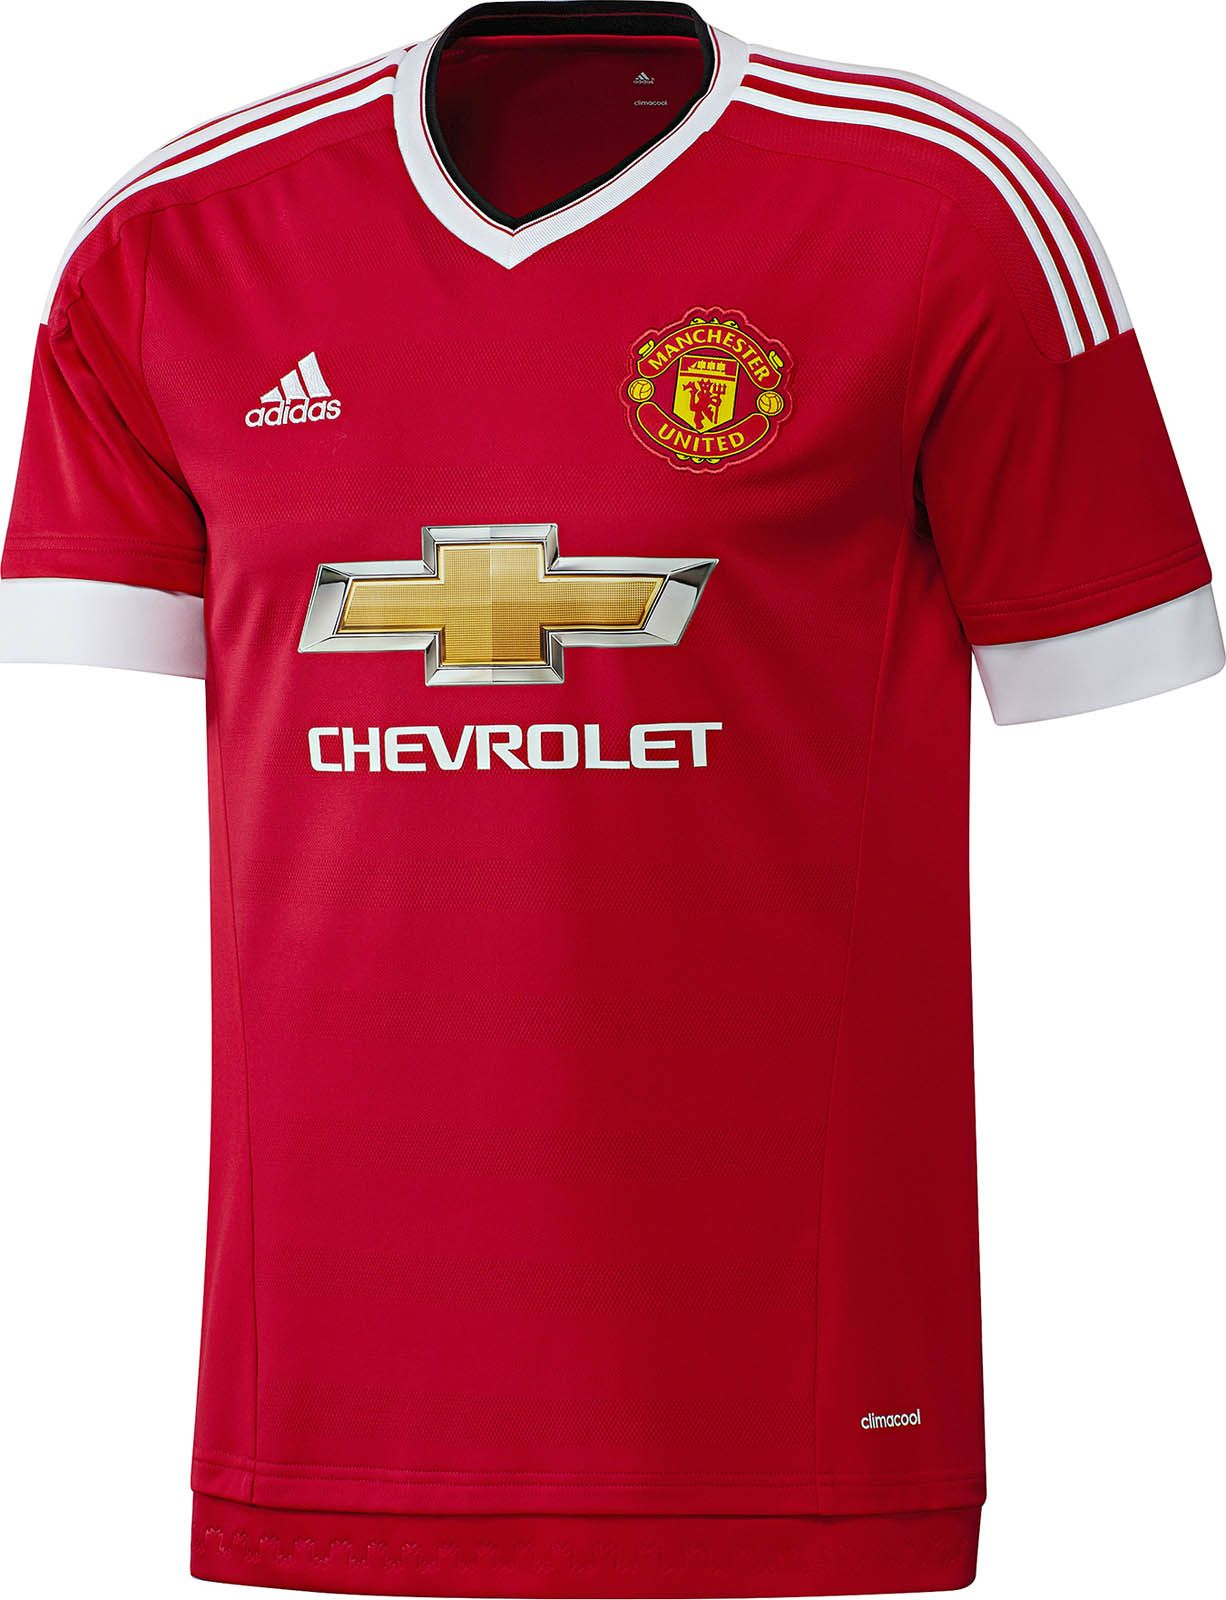 new concept 33107 73eb8 Adidas Manchester United 15-16 Kits Revealed | Football ...